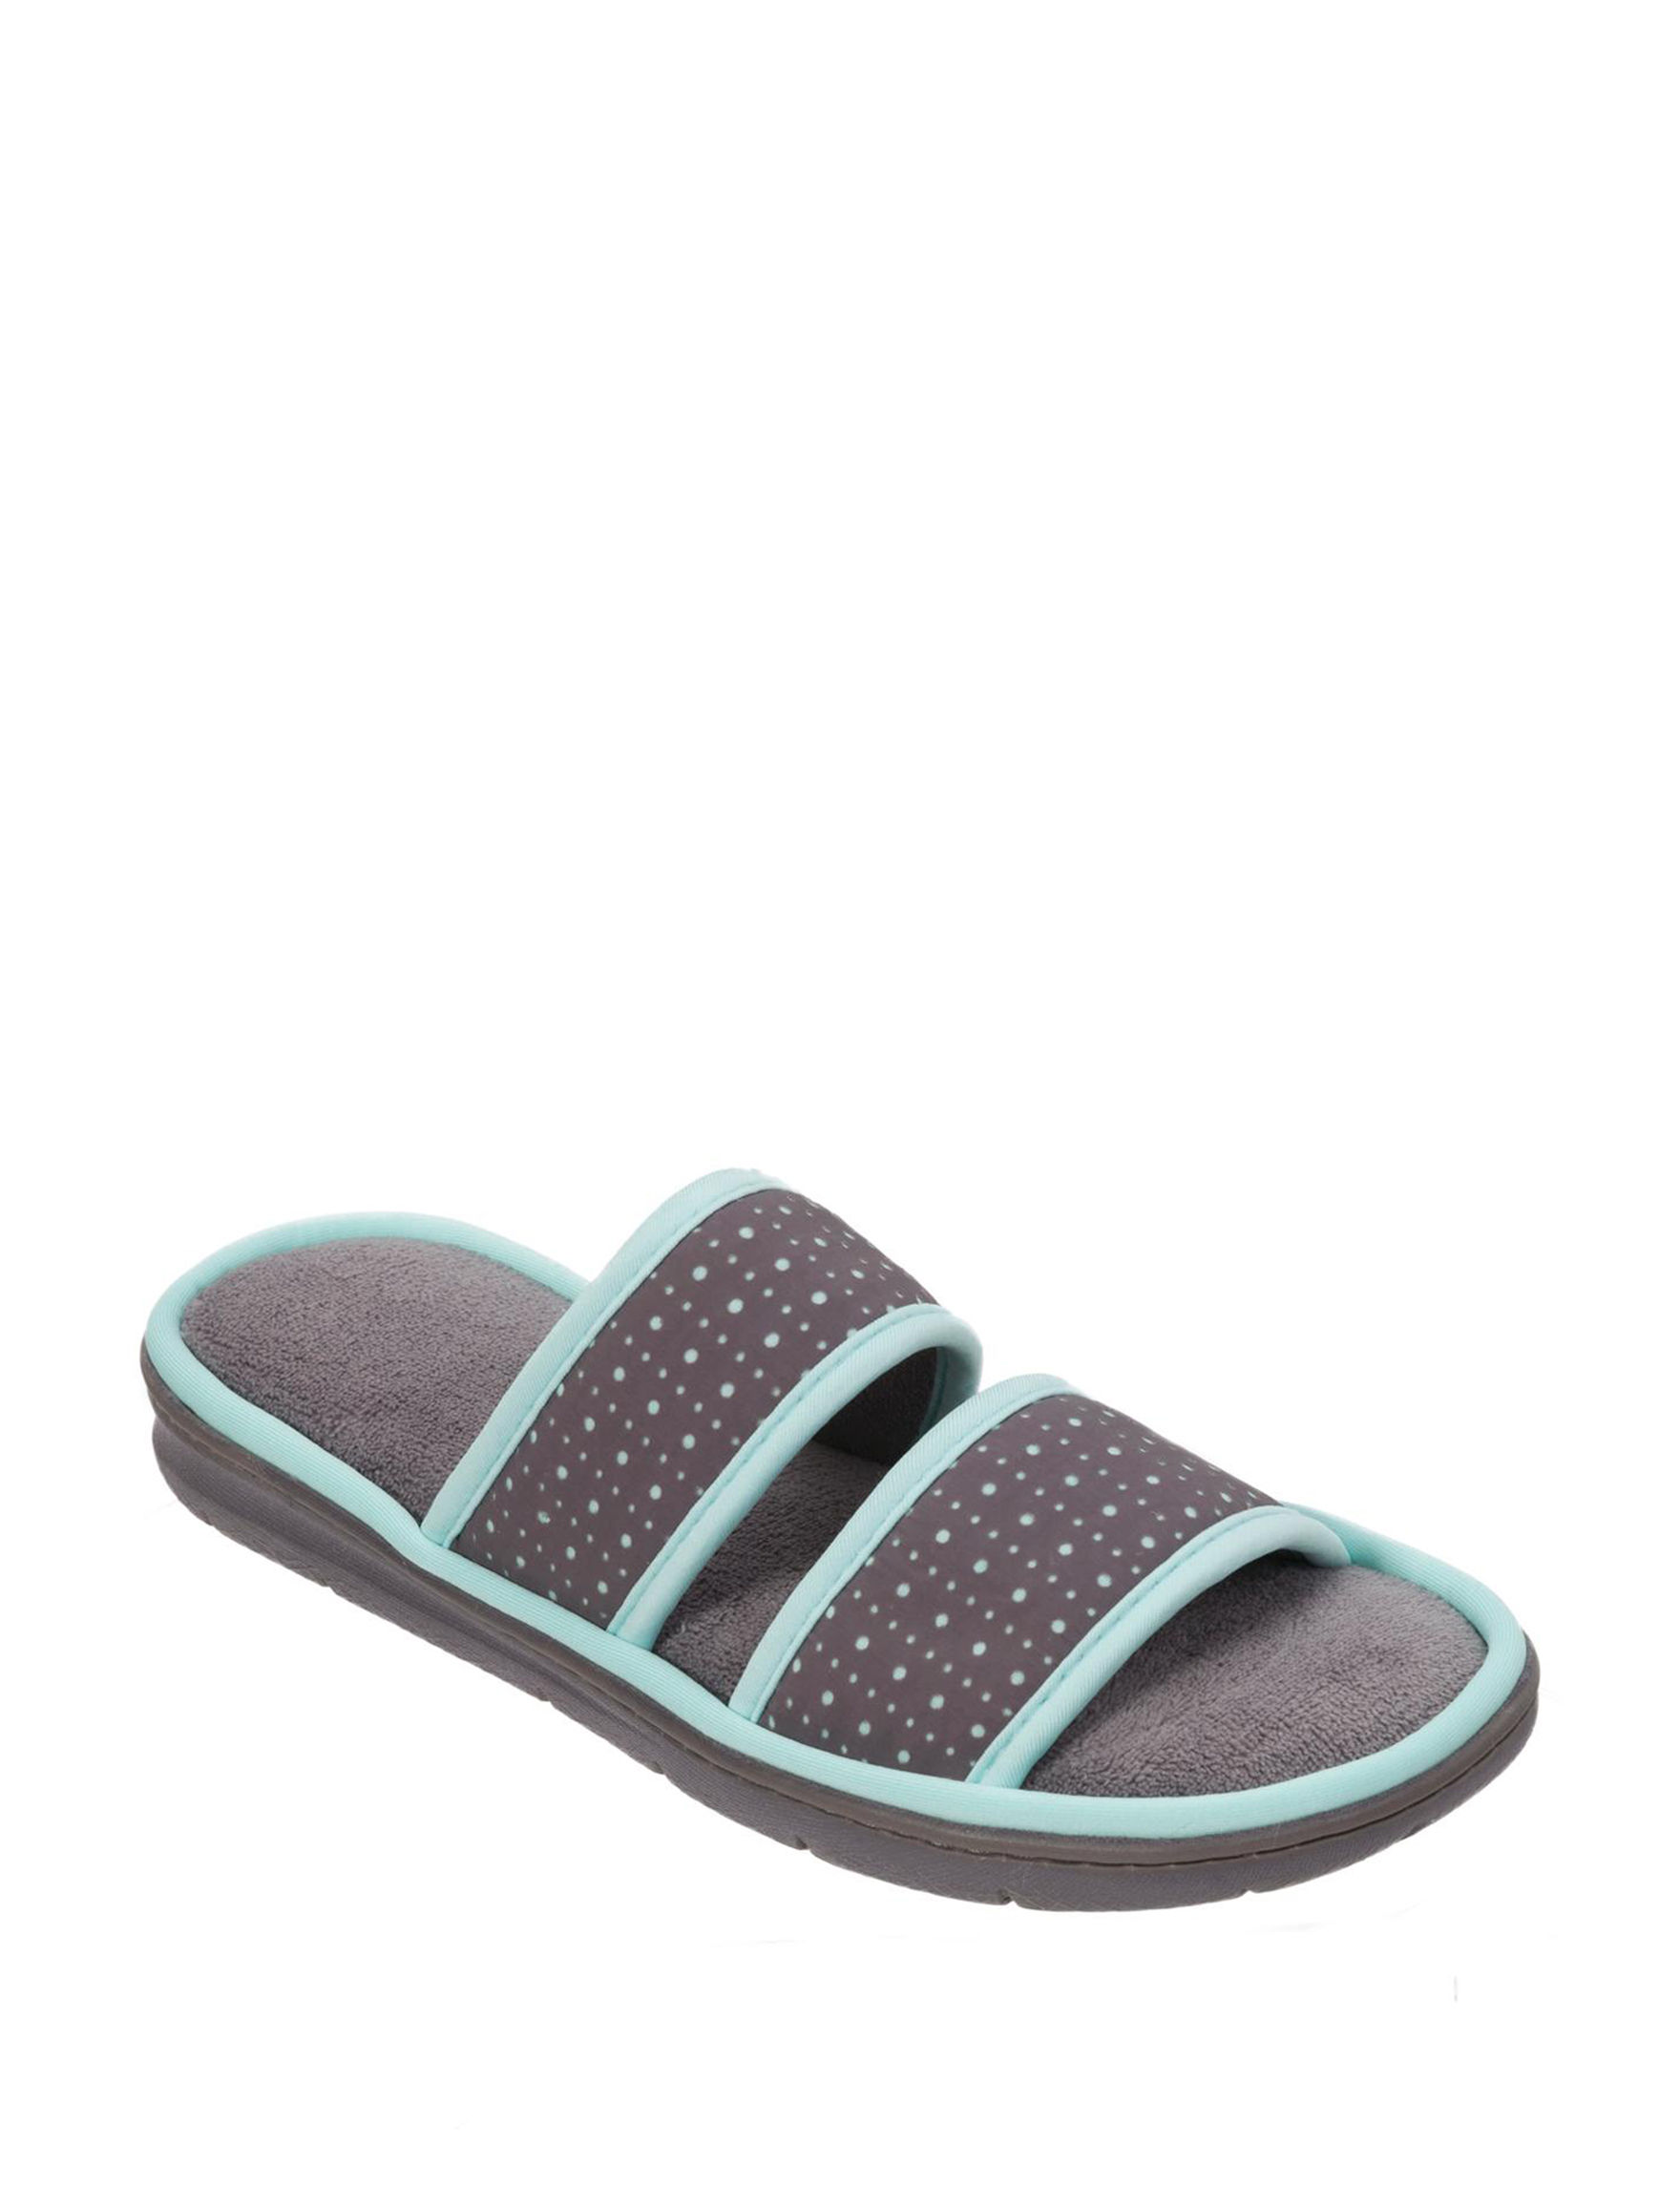 Dearfoams Miscellaneous Slipper Sandals